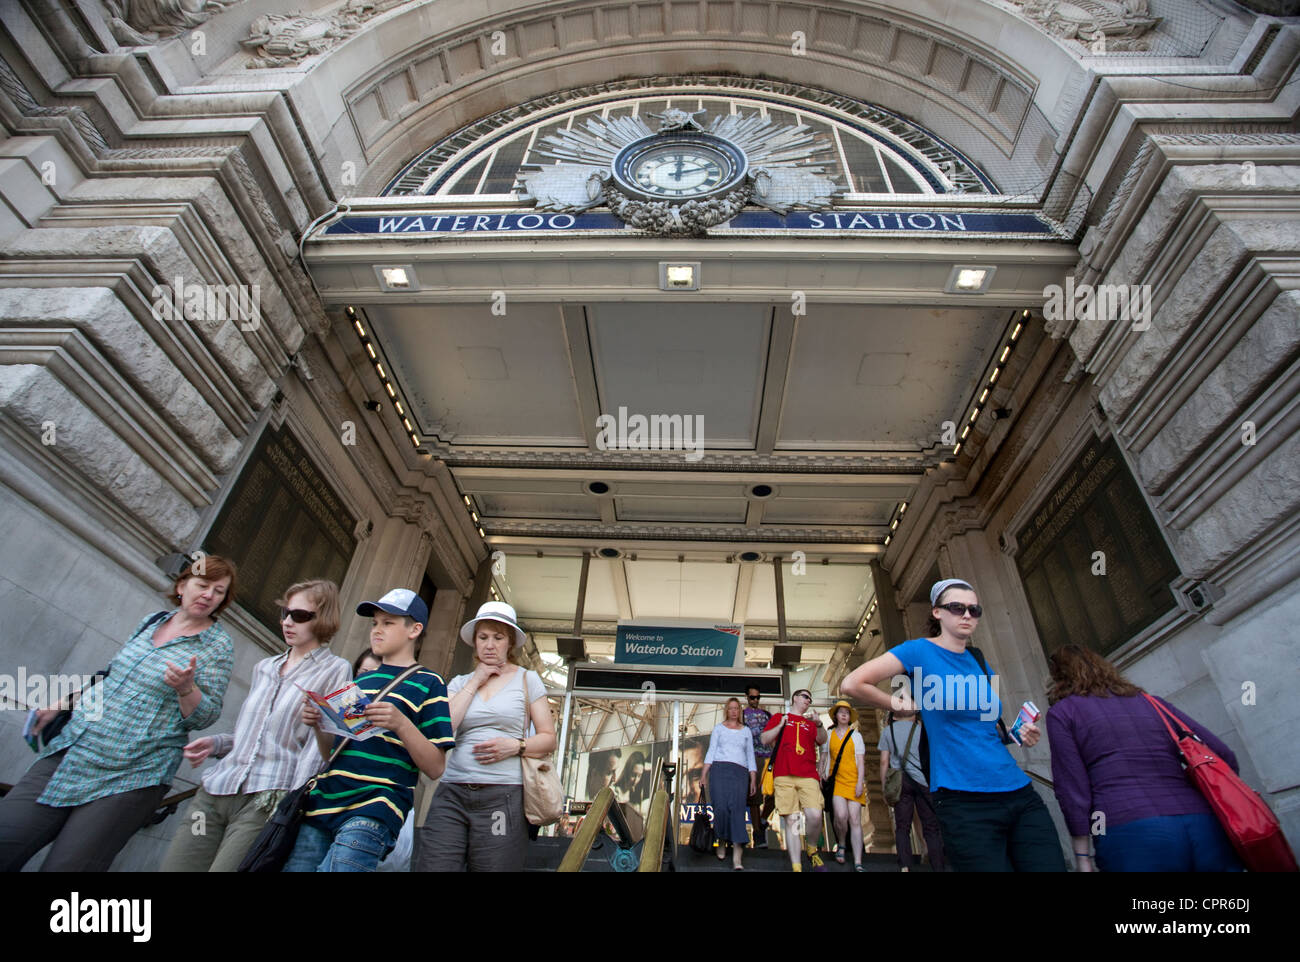 Main entrance to Waterloo Station, London - Stock Image